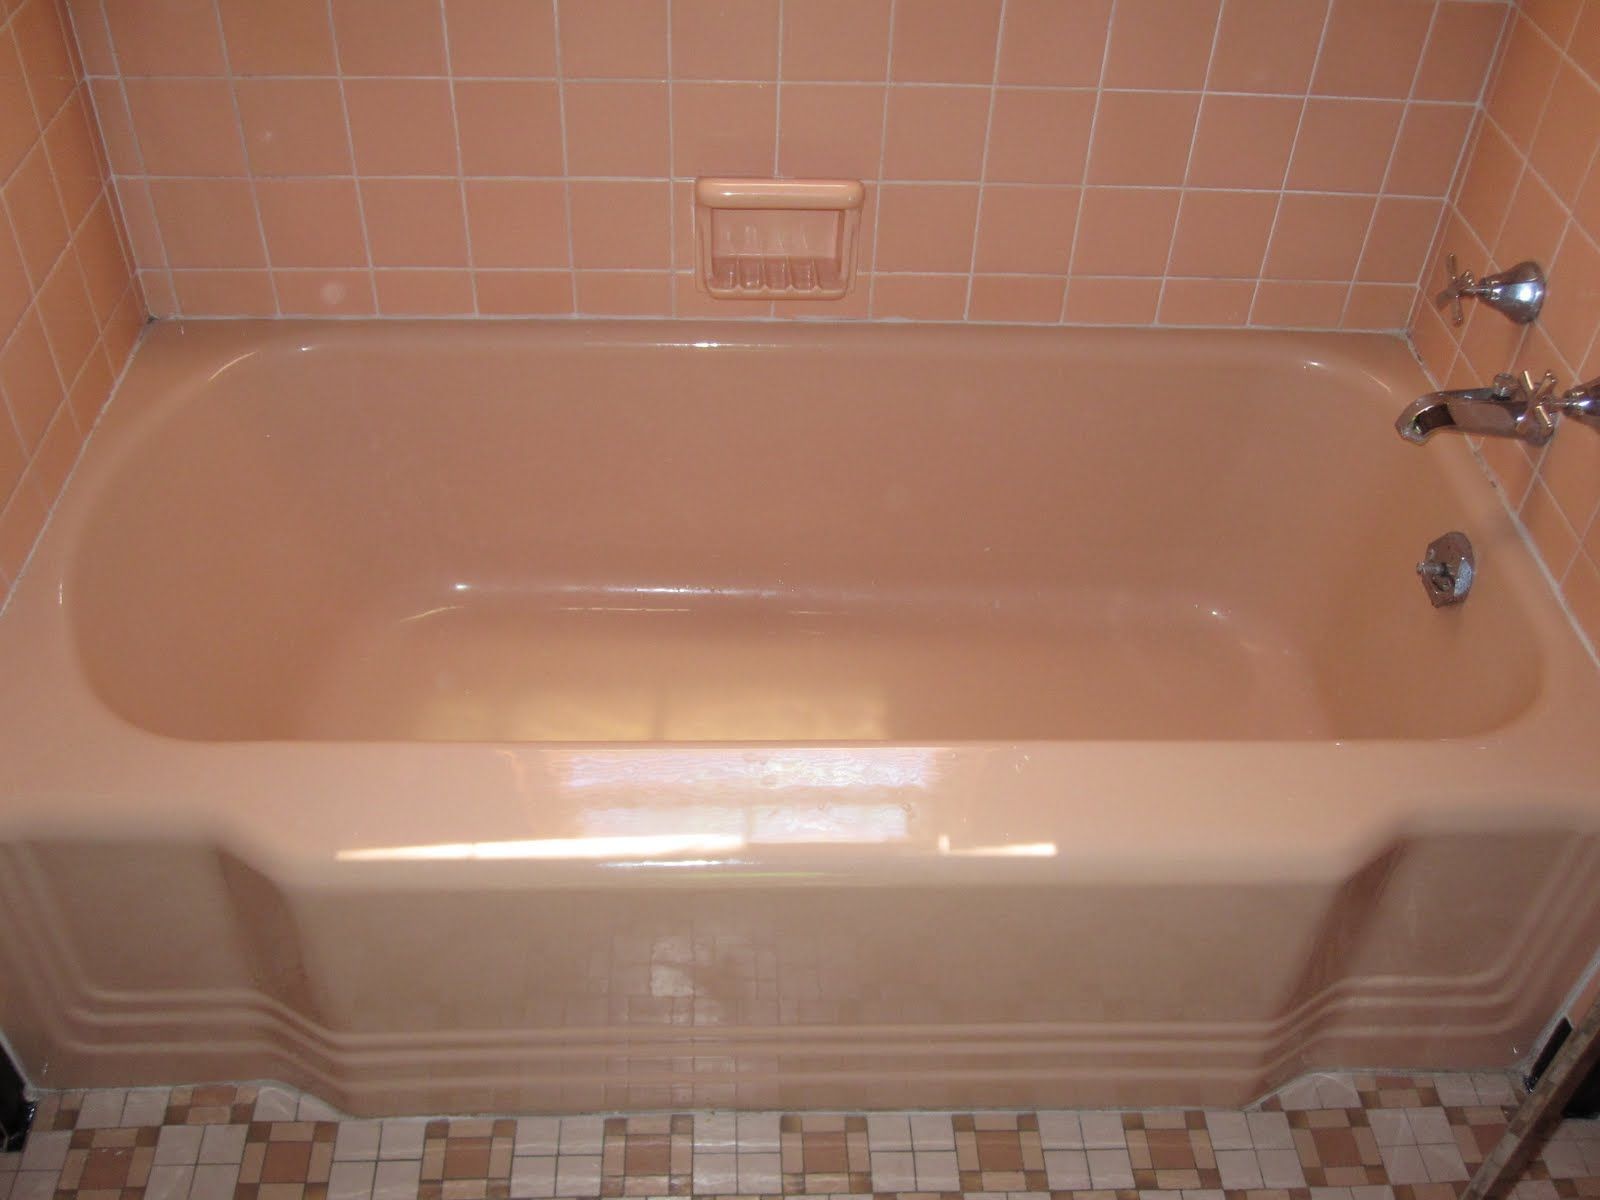 peach bathtub | Bathroom | Pinterest | Bathtubs, Tubs and Iron